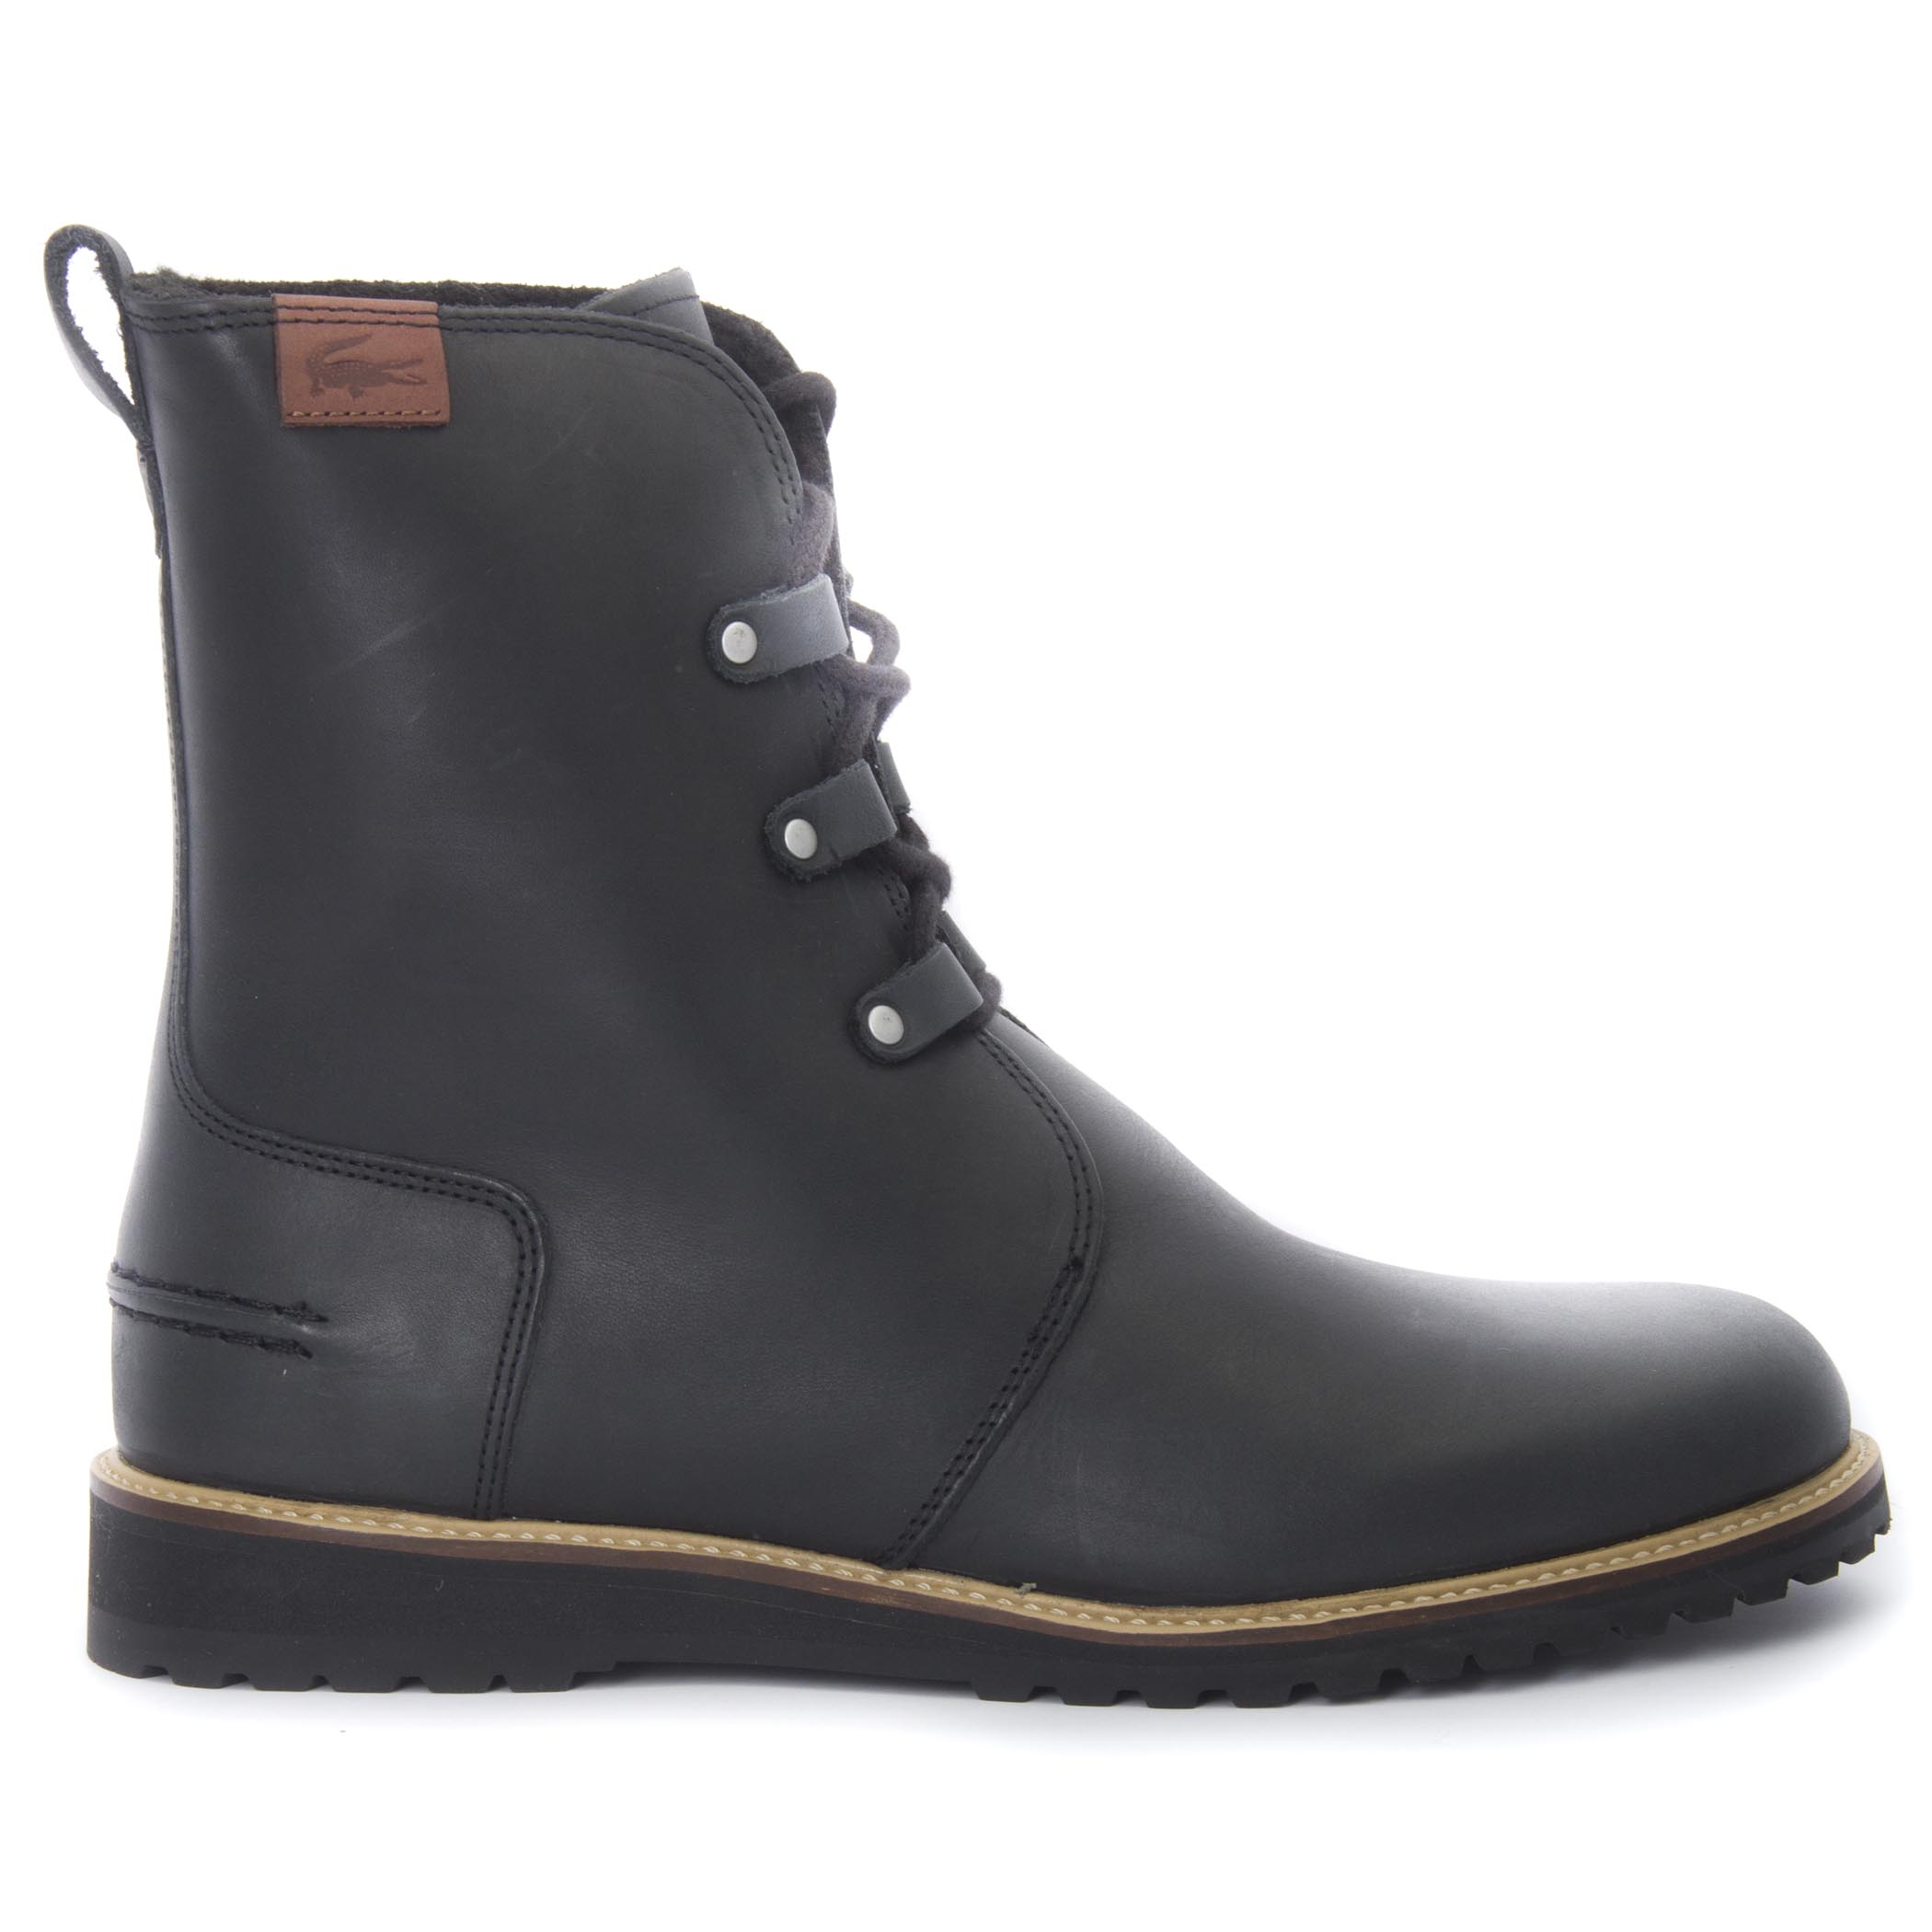 27bcd8544e36a Lacoste Women s Baylen Leather Winter Boots